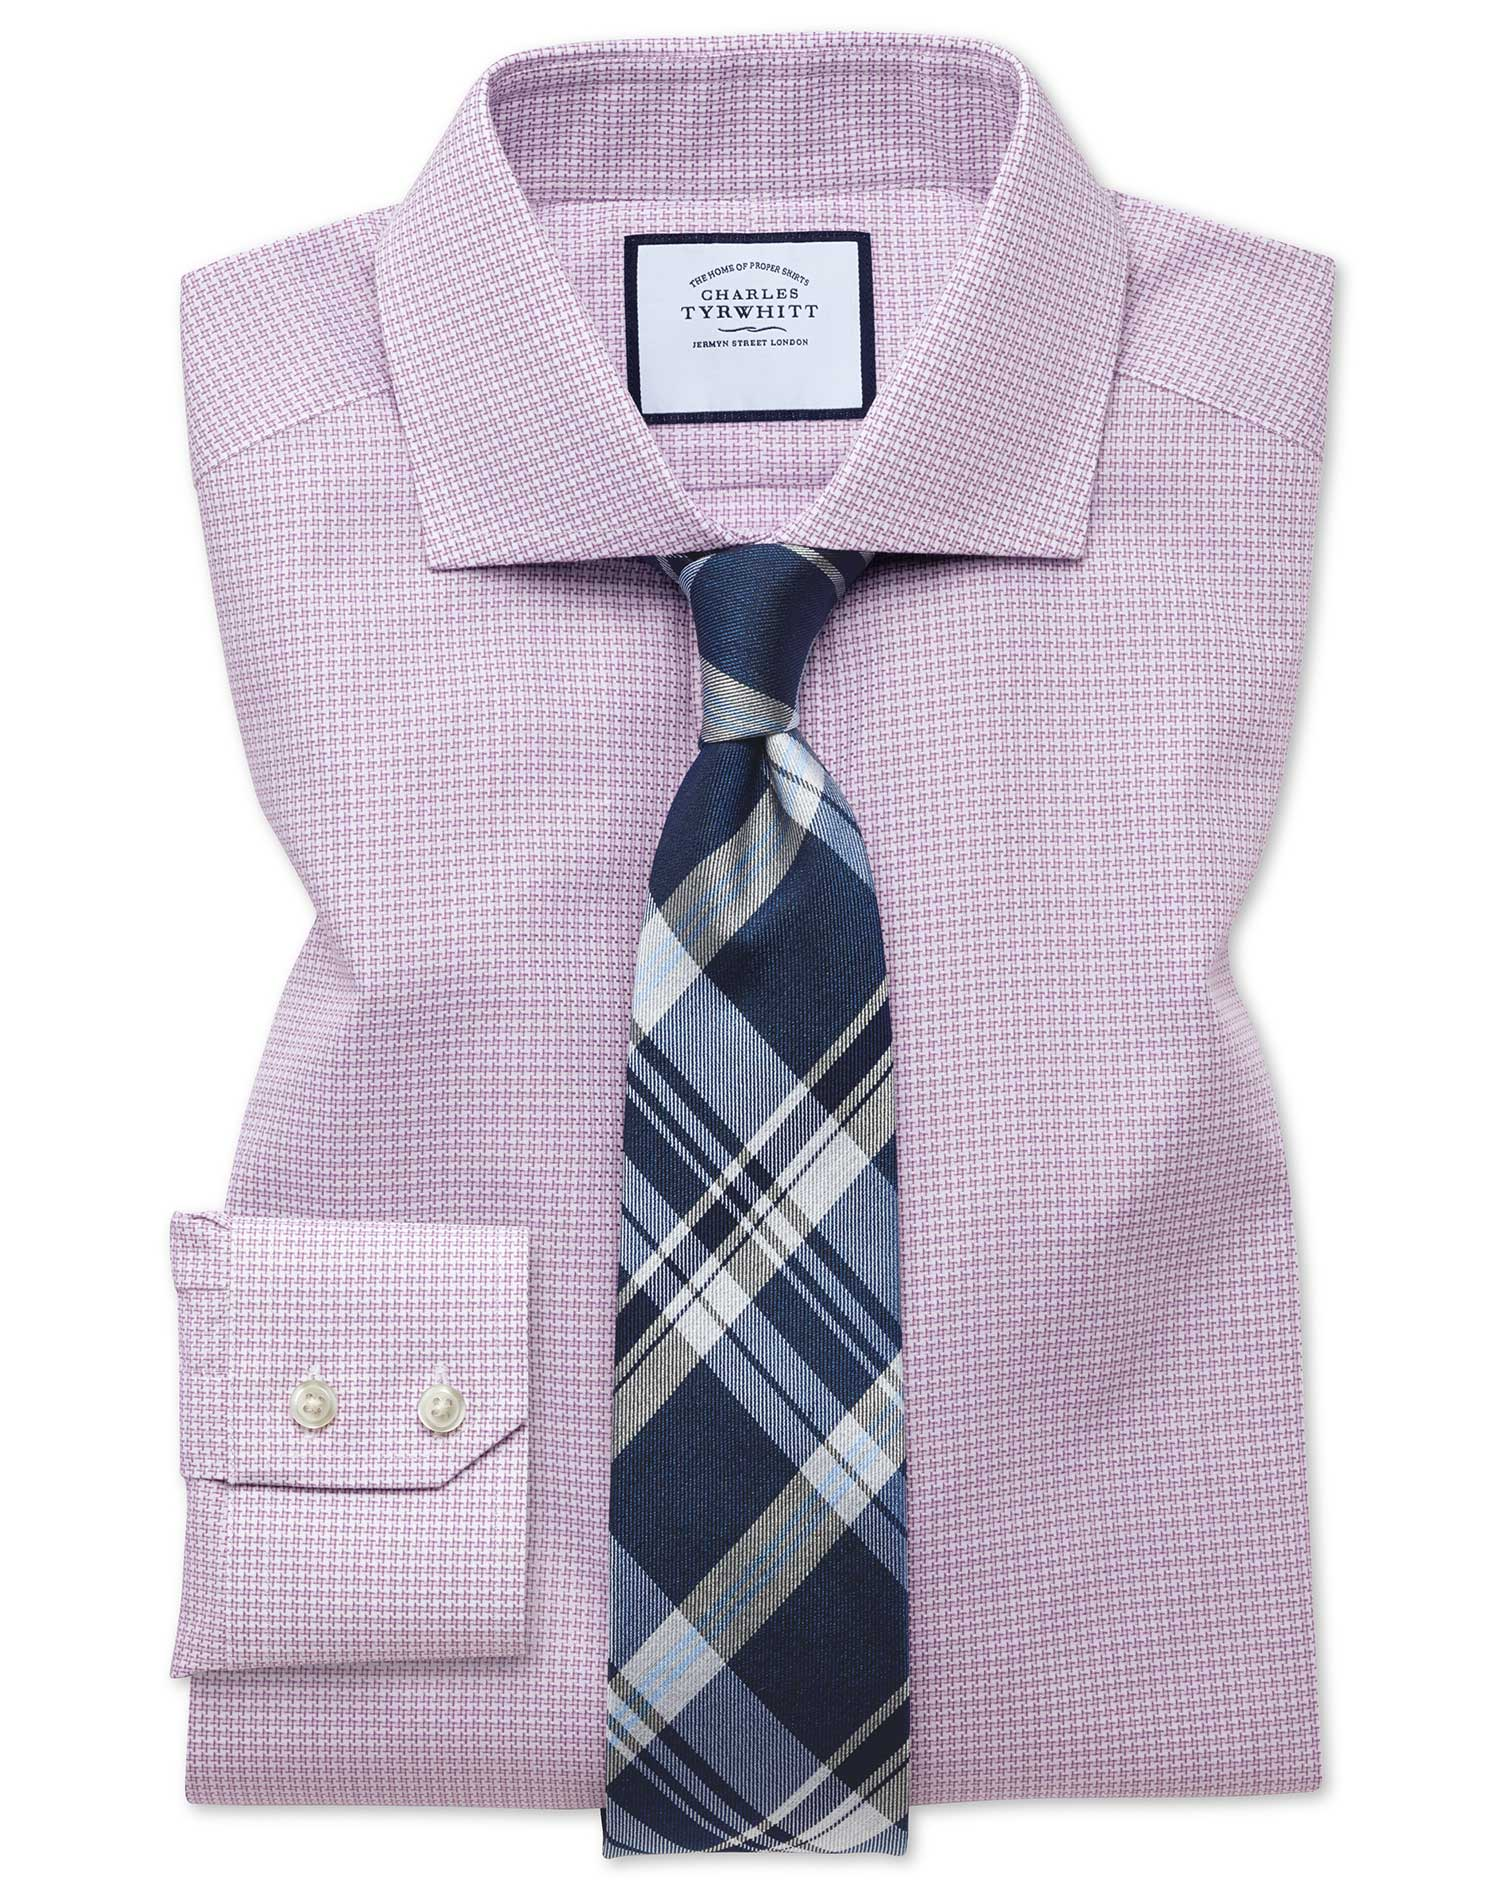 Slim Fit Textured Puppytooth Pink Cotton Formal Shirt Single Cuff Size 15.5/33 by Charles Tyrwhitt